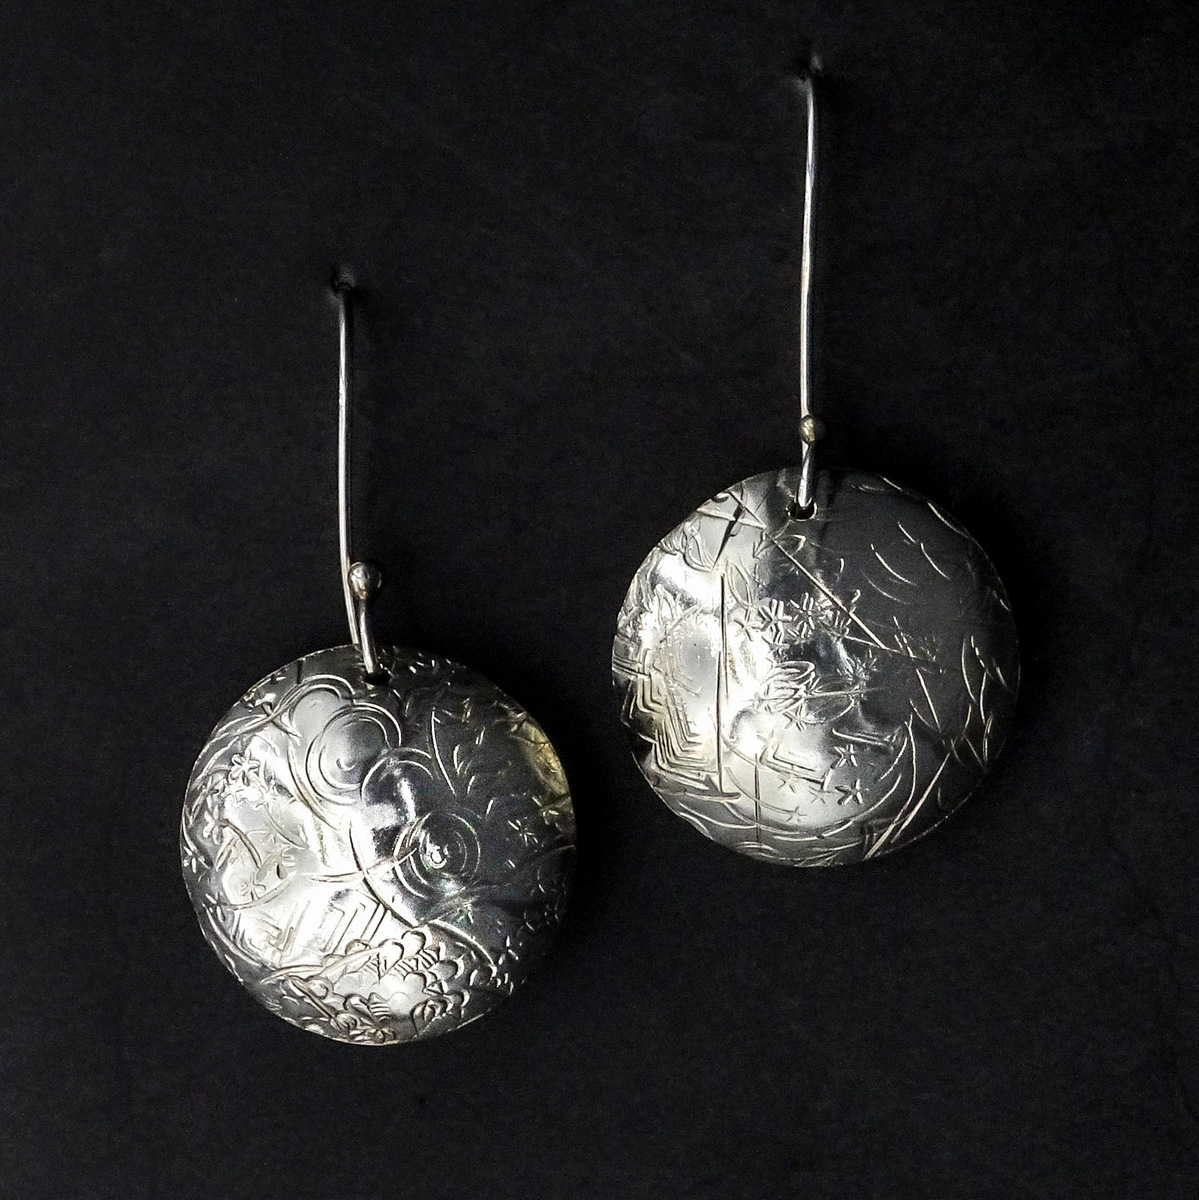 SILVER ORB EARRINGS,  Silver Ear Wires,  1 x 1 inches - 2 inches drop length